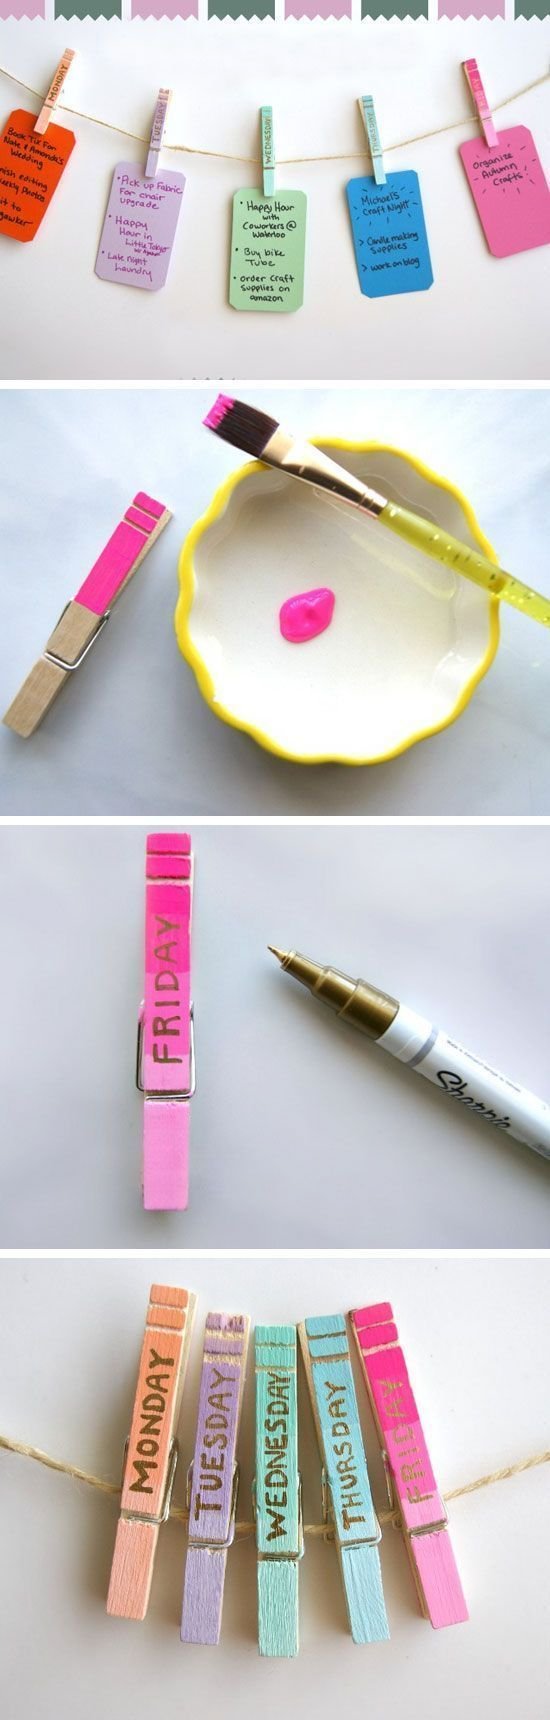 Clothespin Daily Organizers | 23 Life Hacks Every Girl Should Know | Easy Organization Ideas for Bedrooms